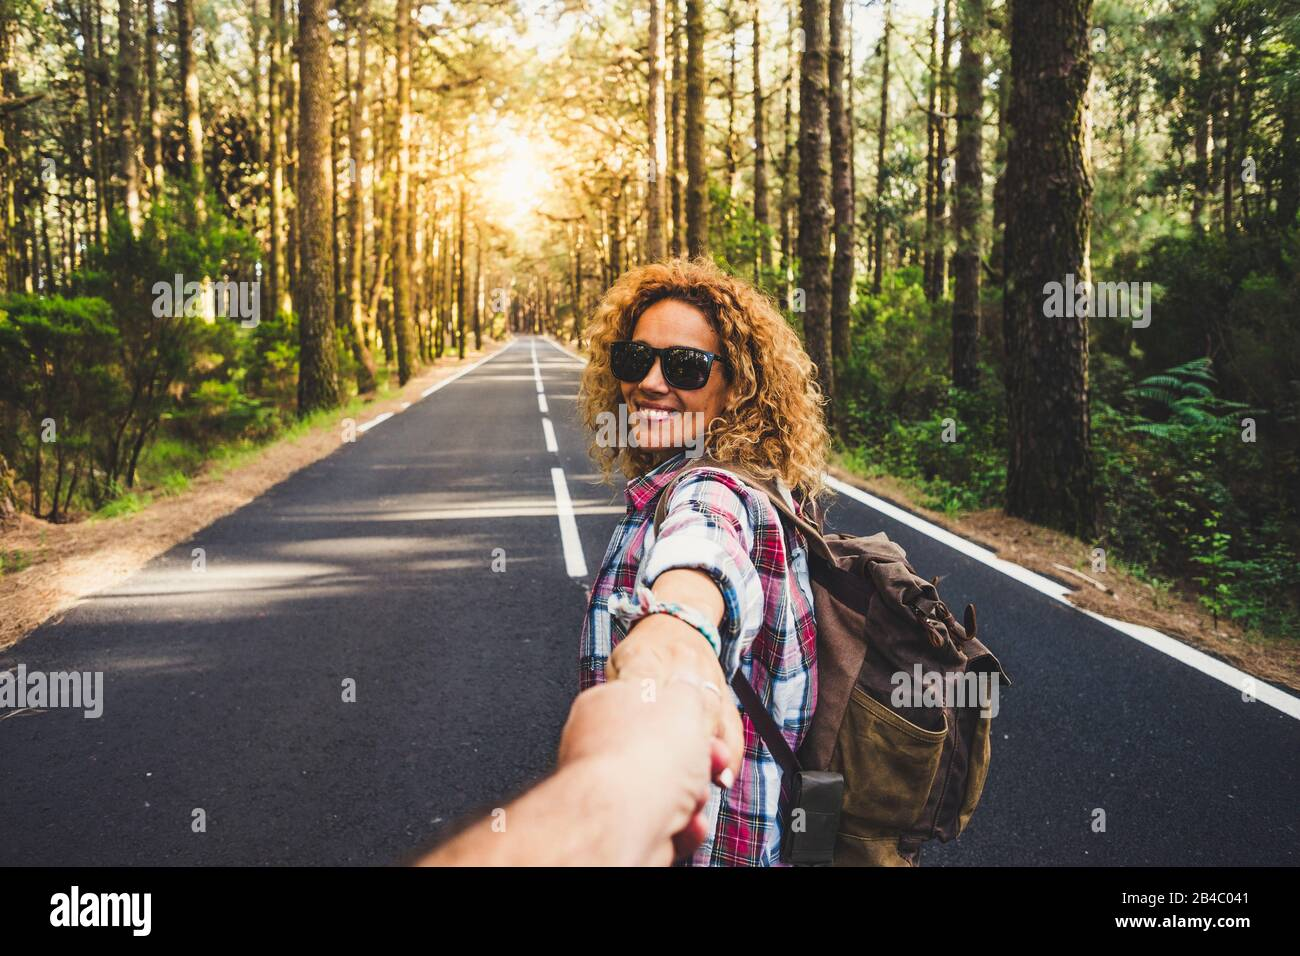 Couple travelers Man and Woman follow holding hands at long way road forest landscape and sun on background Love and Travel happy emotions Lifestyle concept. People traveling active adventure vacations Stock Photo